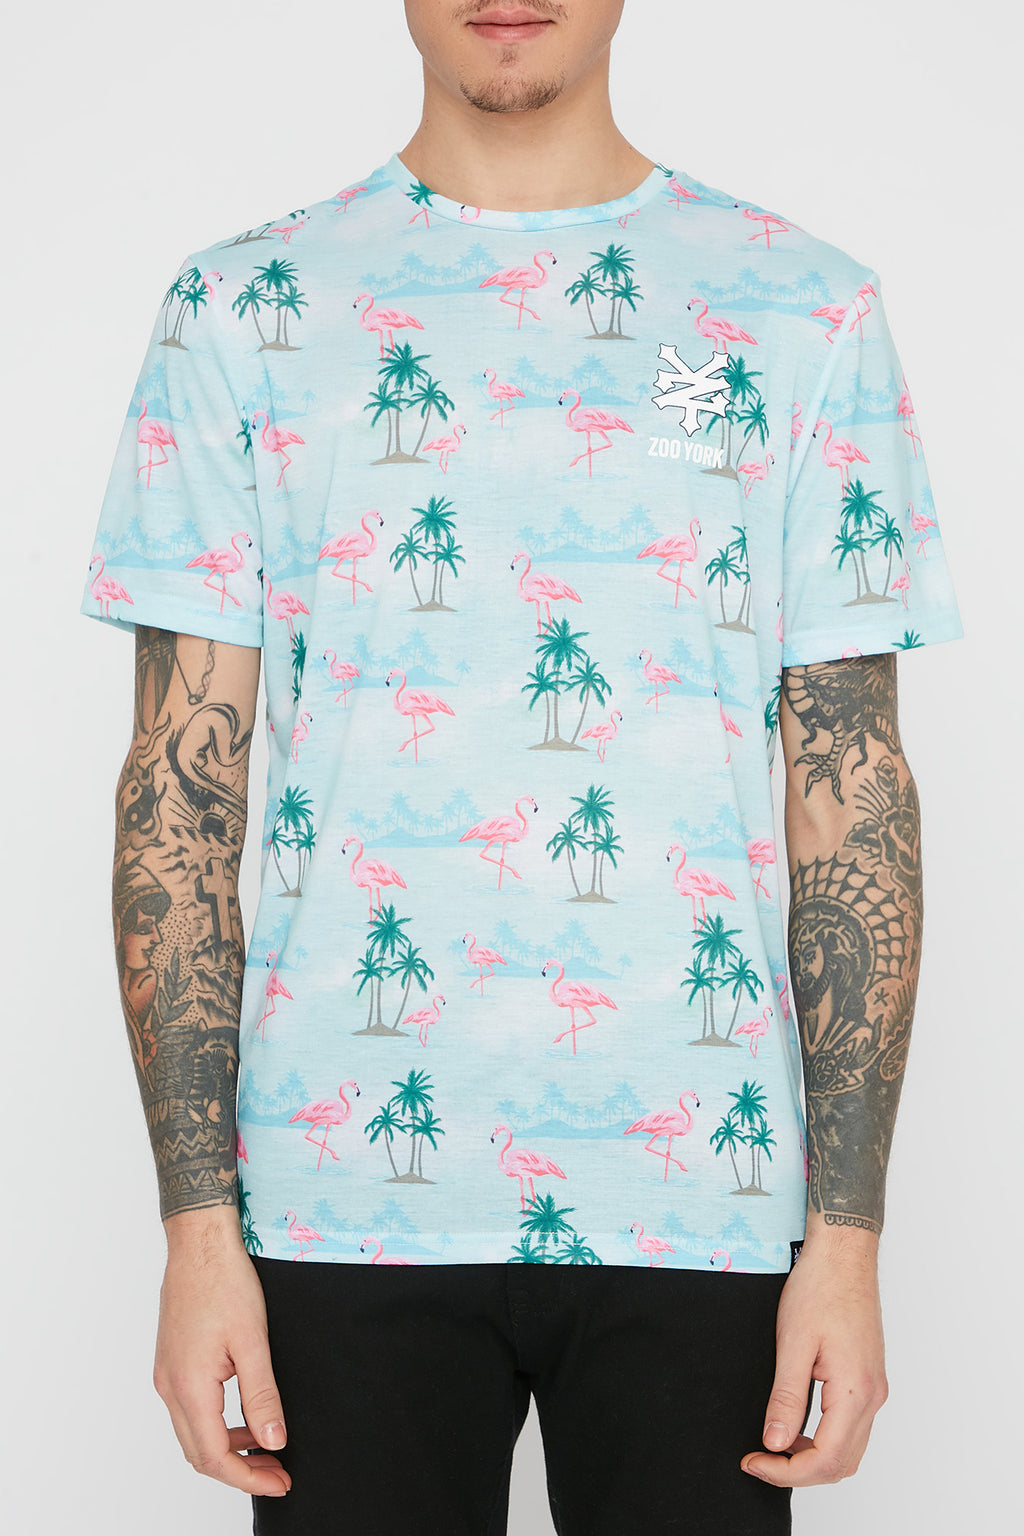 Zoo York Mens Flamingo T-Shirt